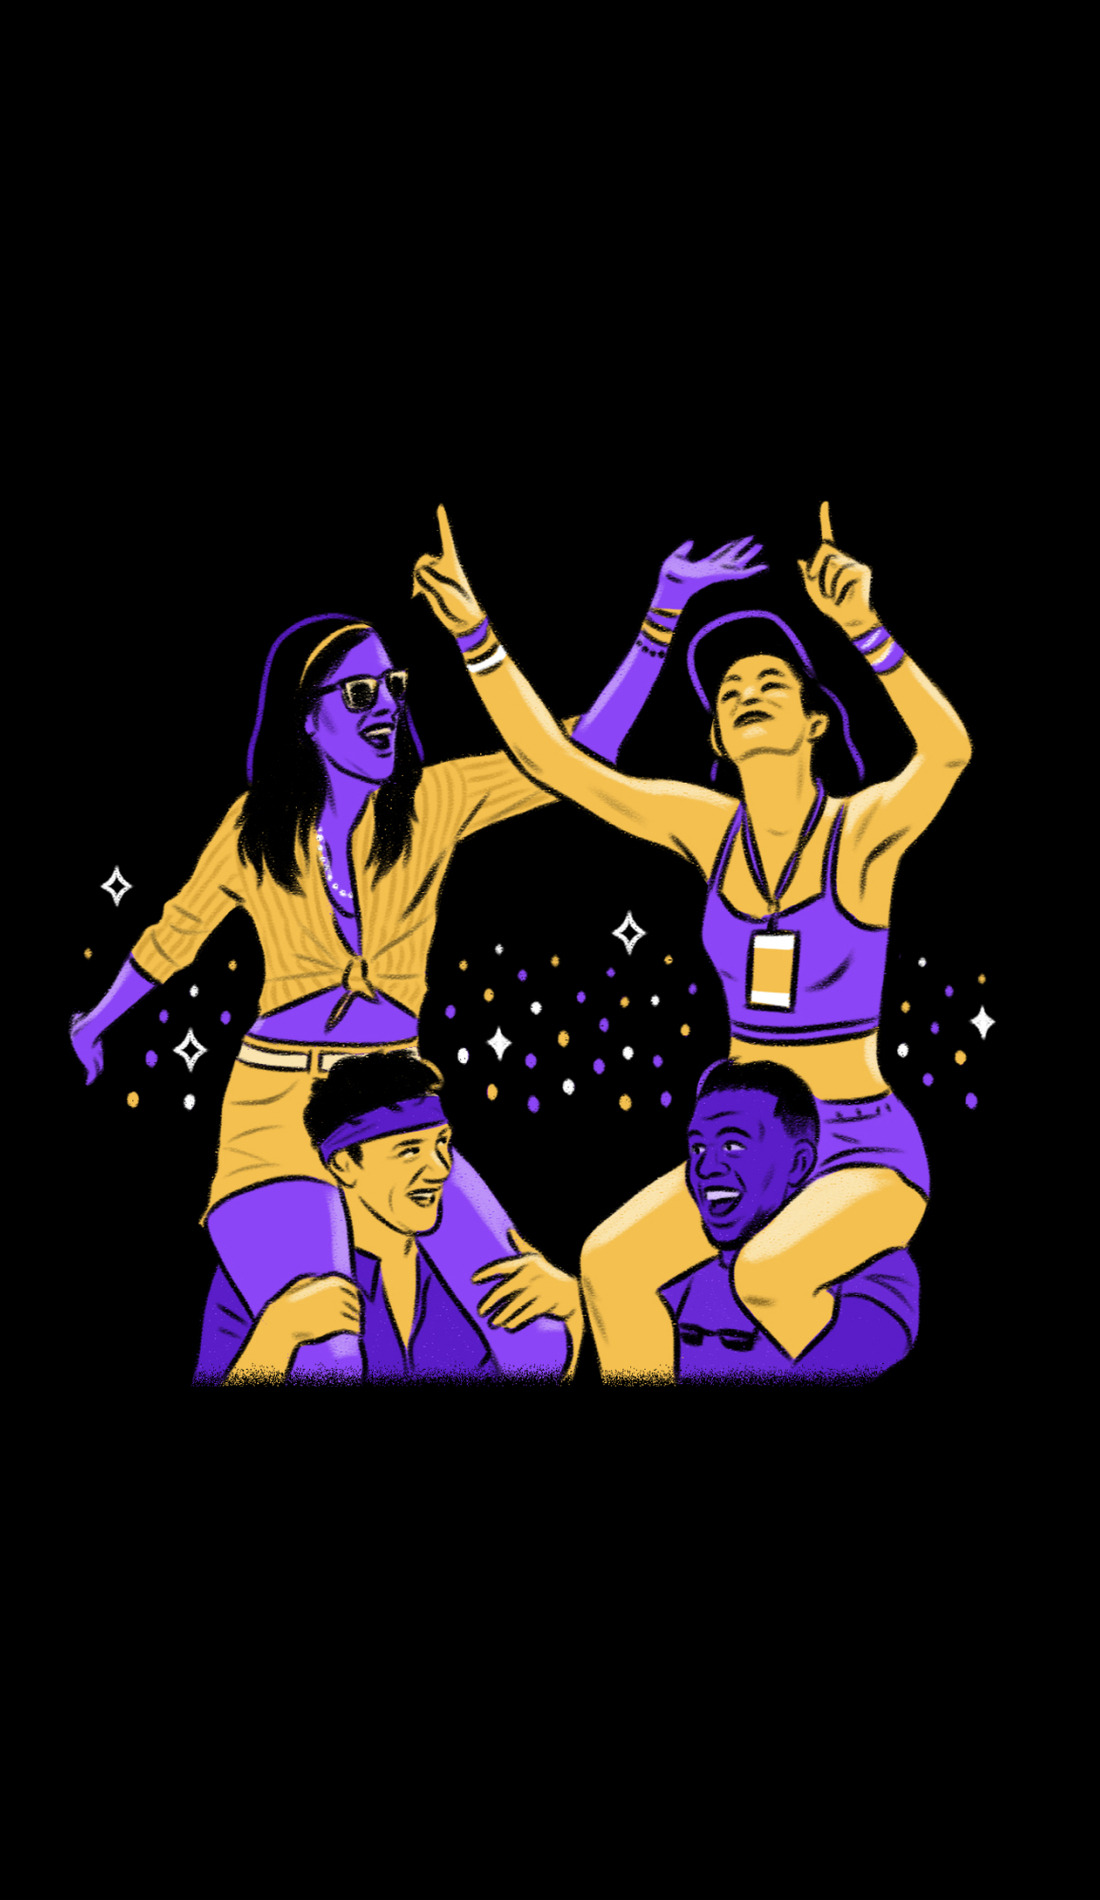 A Radio 104.5 Birthday Show live event